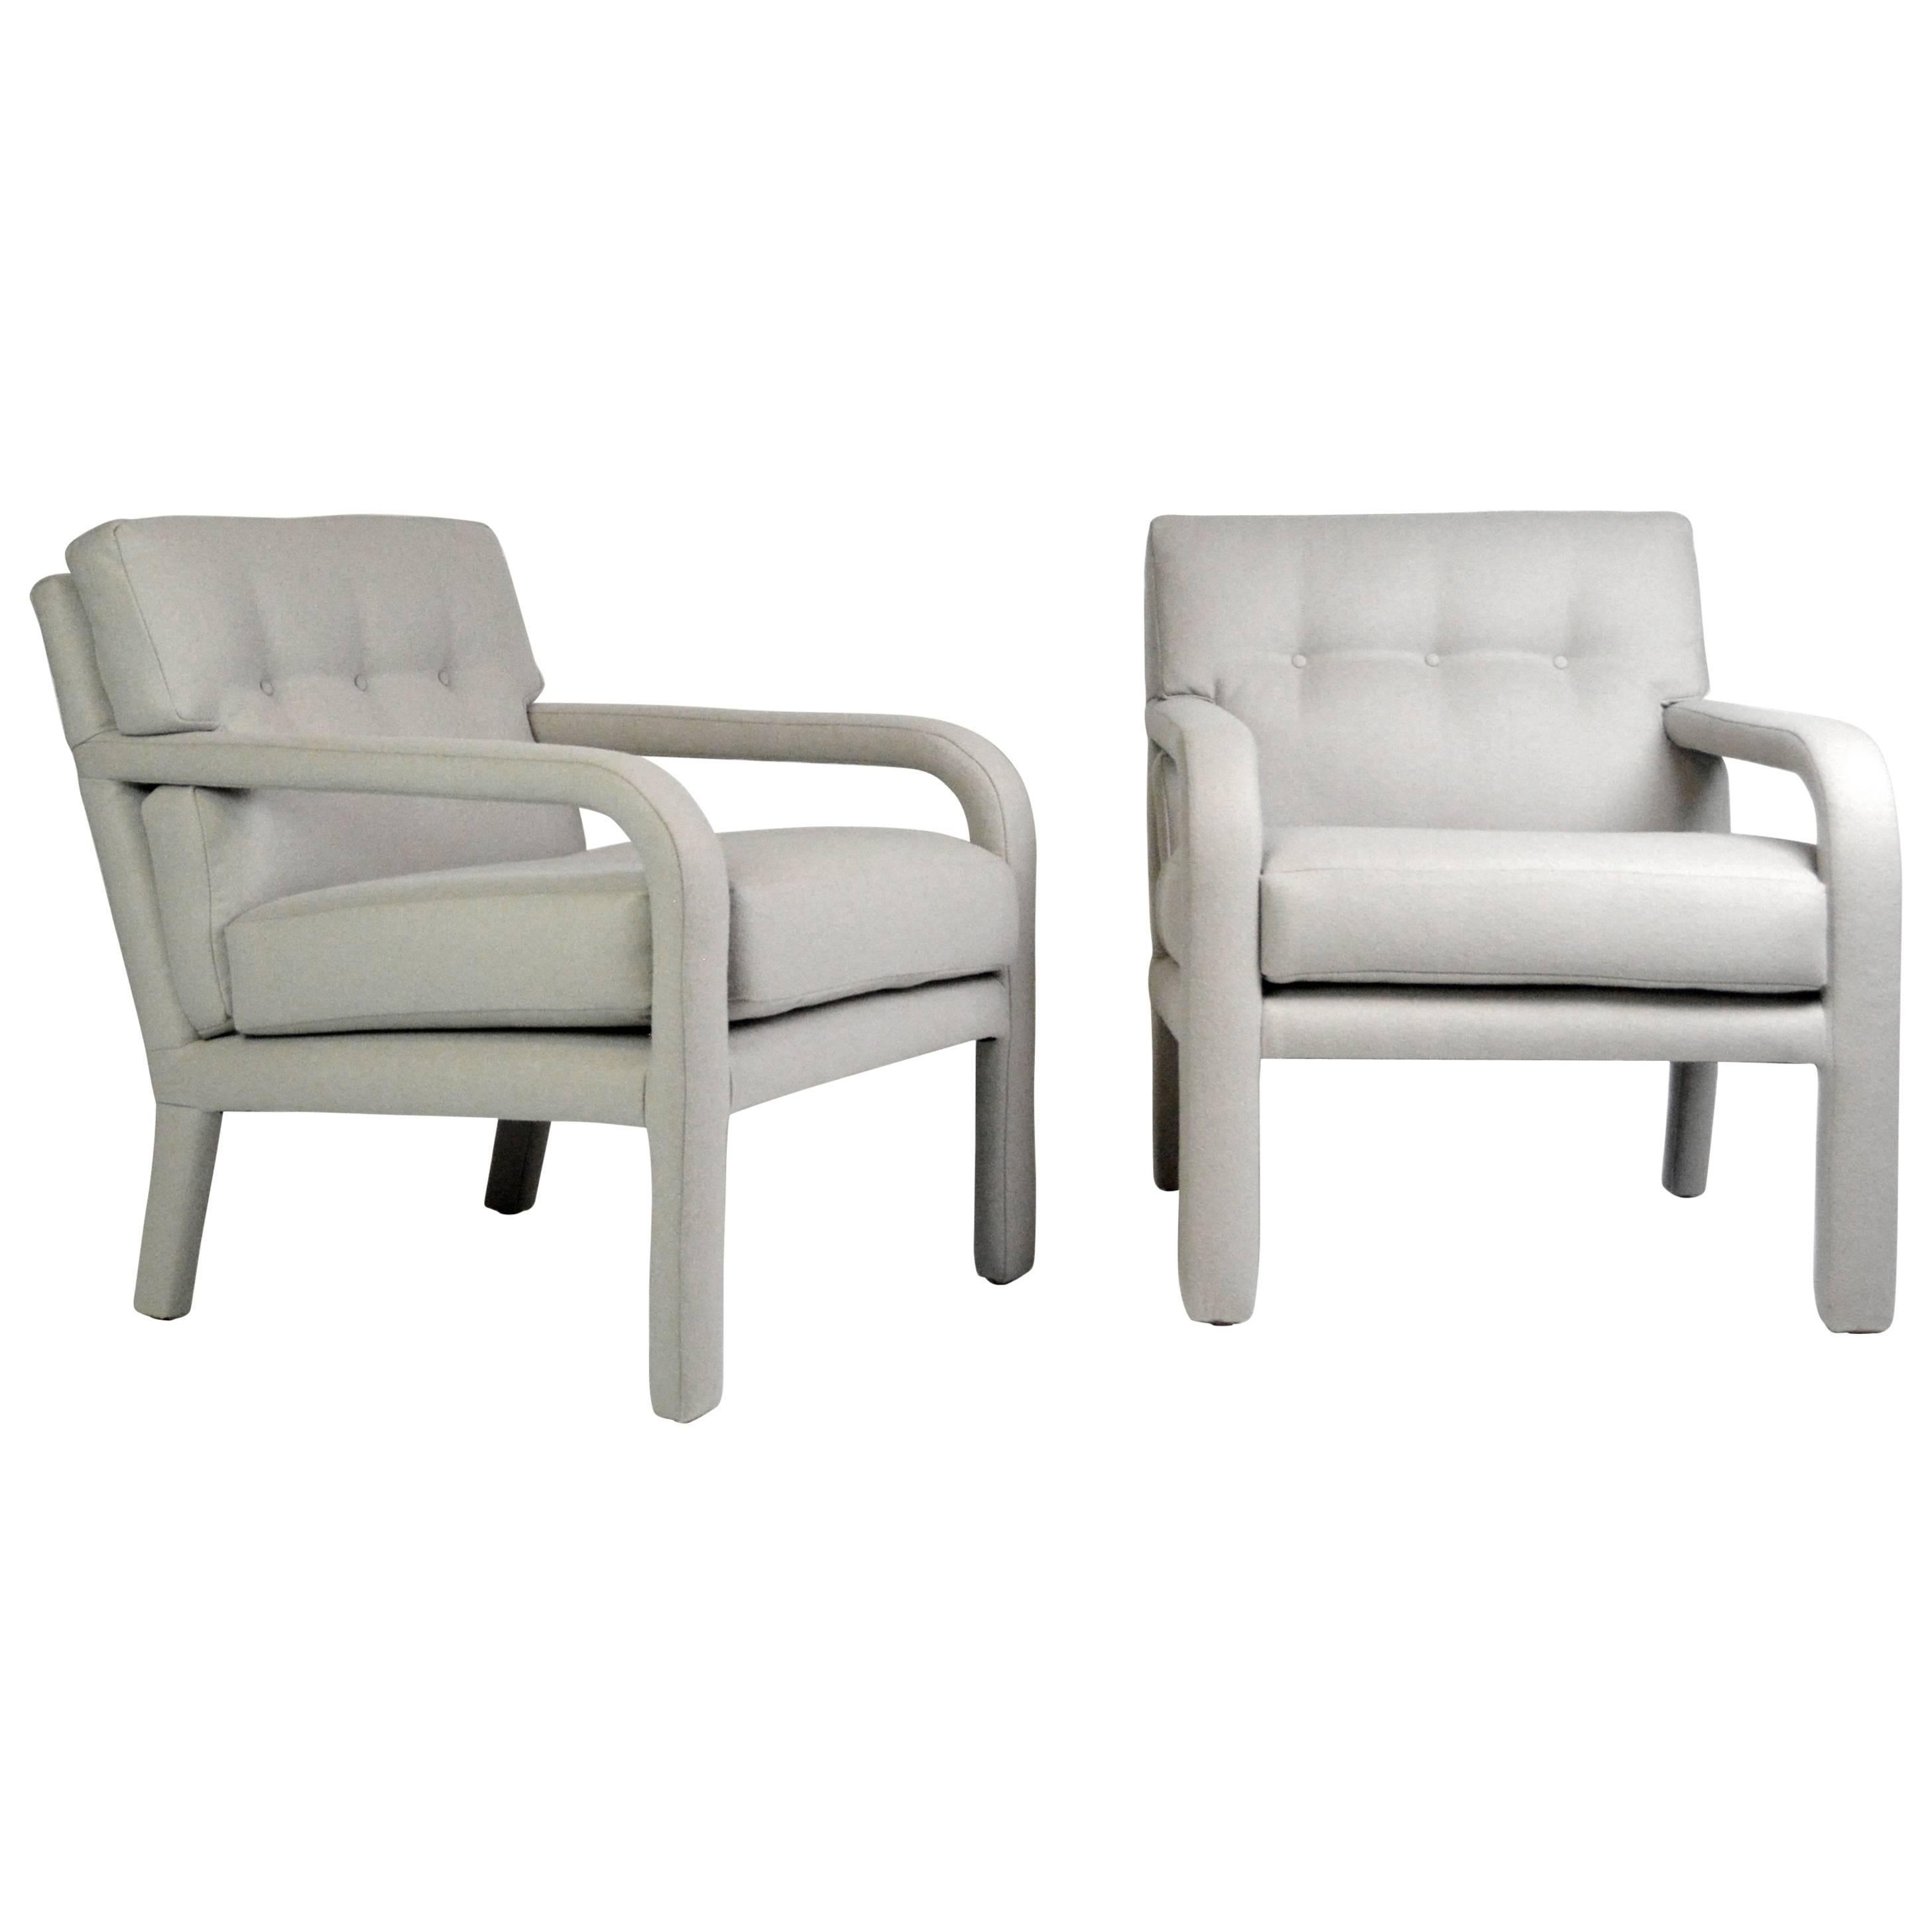 Pair of Fully Upholstered Armchairs